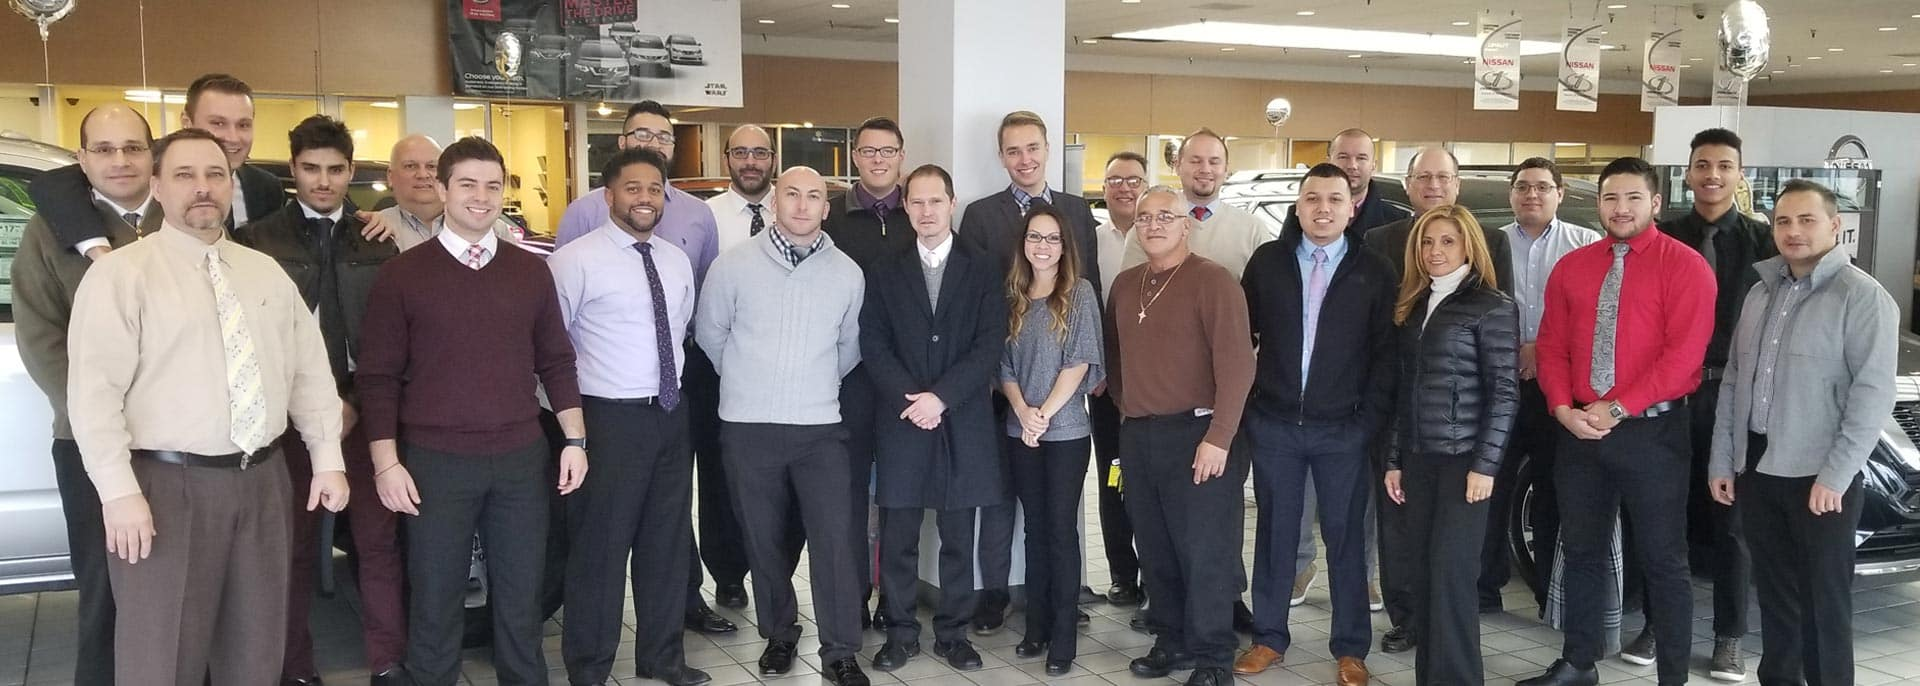 Backed By Berman Staff Photo at Star Nissan